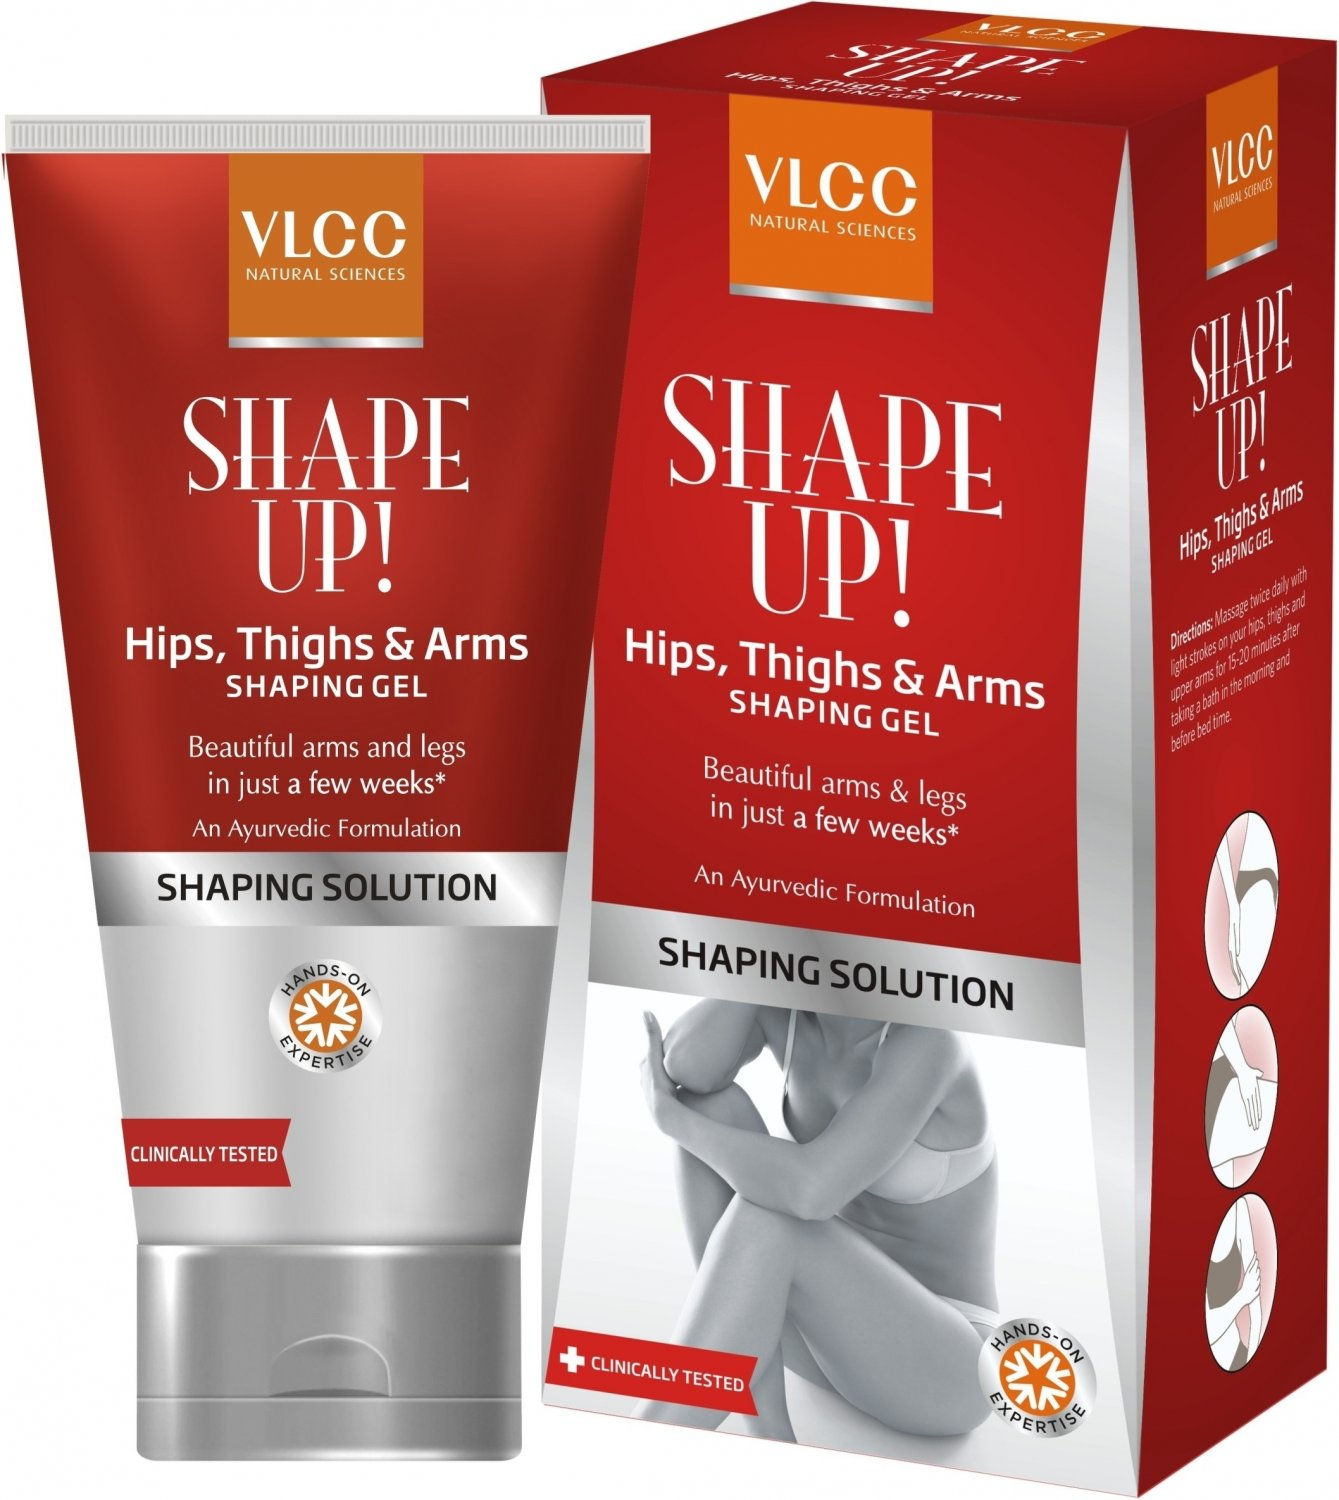 Vlcc Shape up Hips, Thighs & Arms Shaping Gel 100 gms